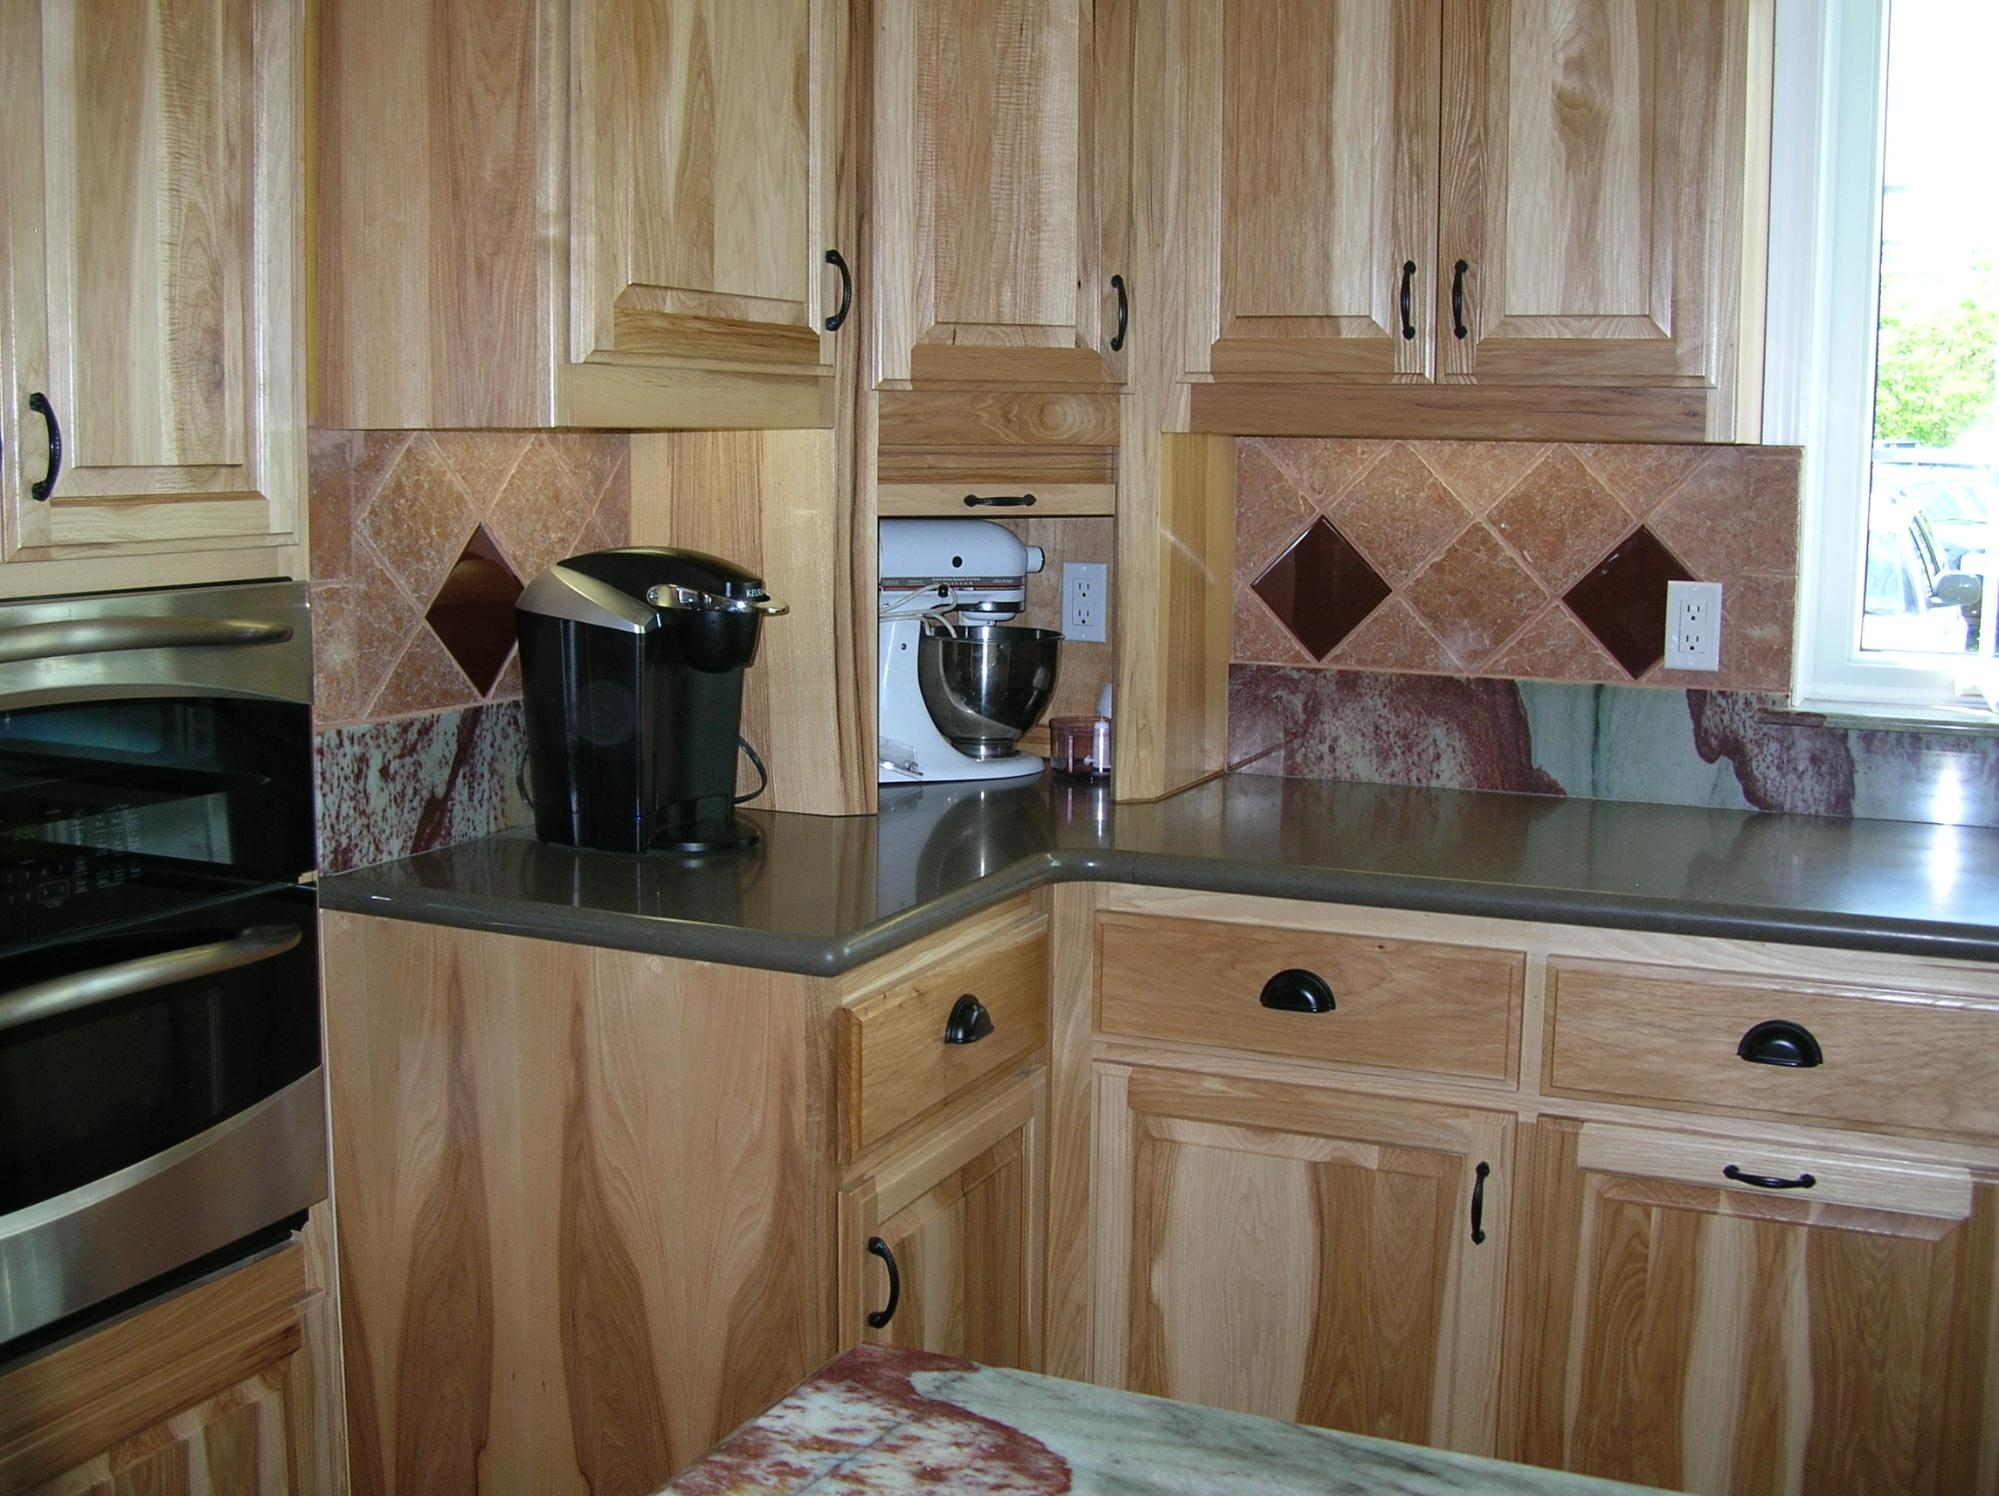 Hickory Kitchen Cabinets with Clear Finish | Blog